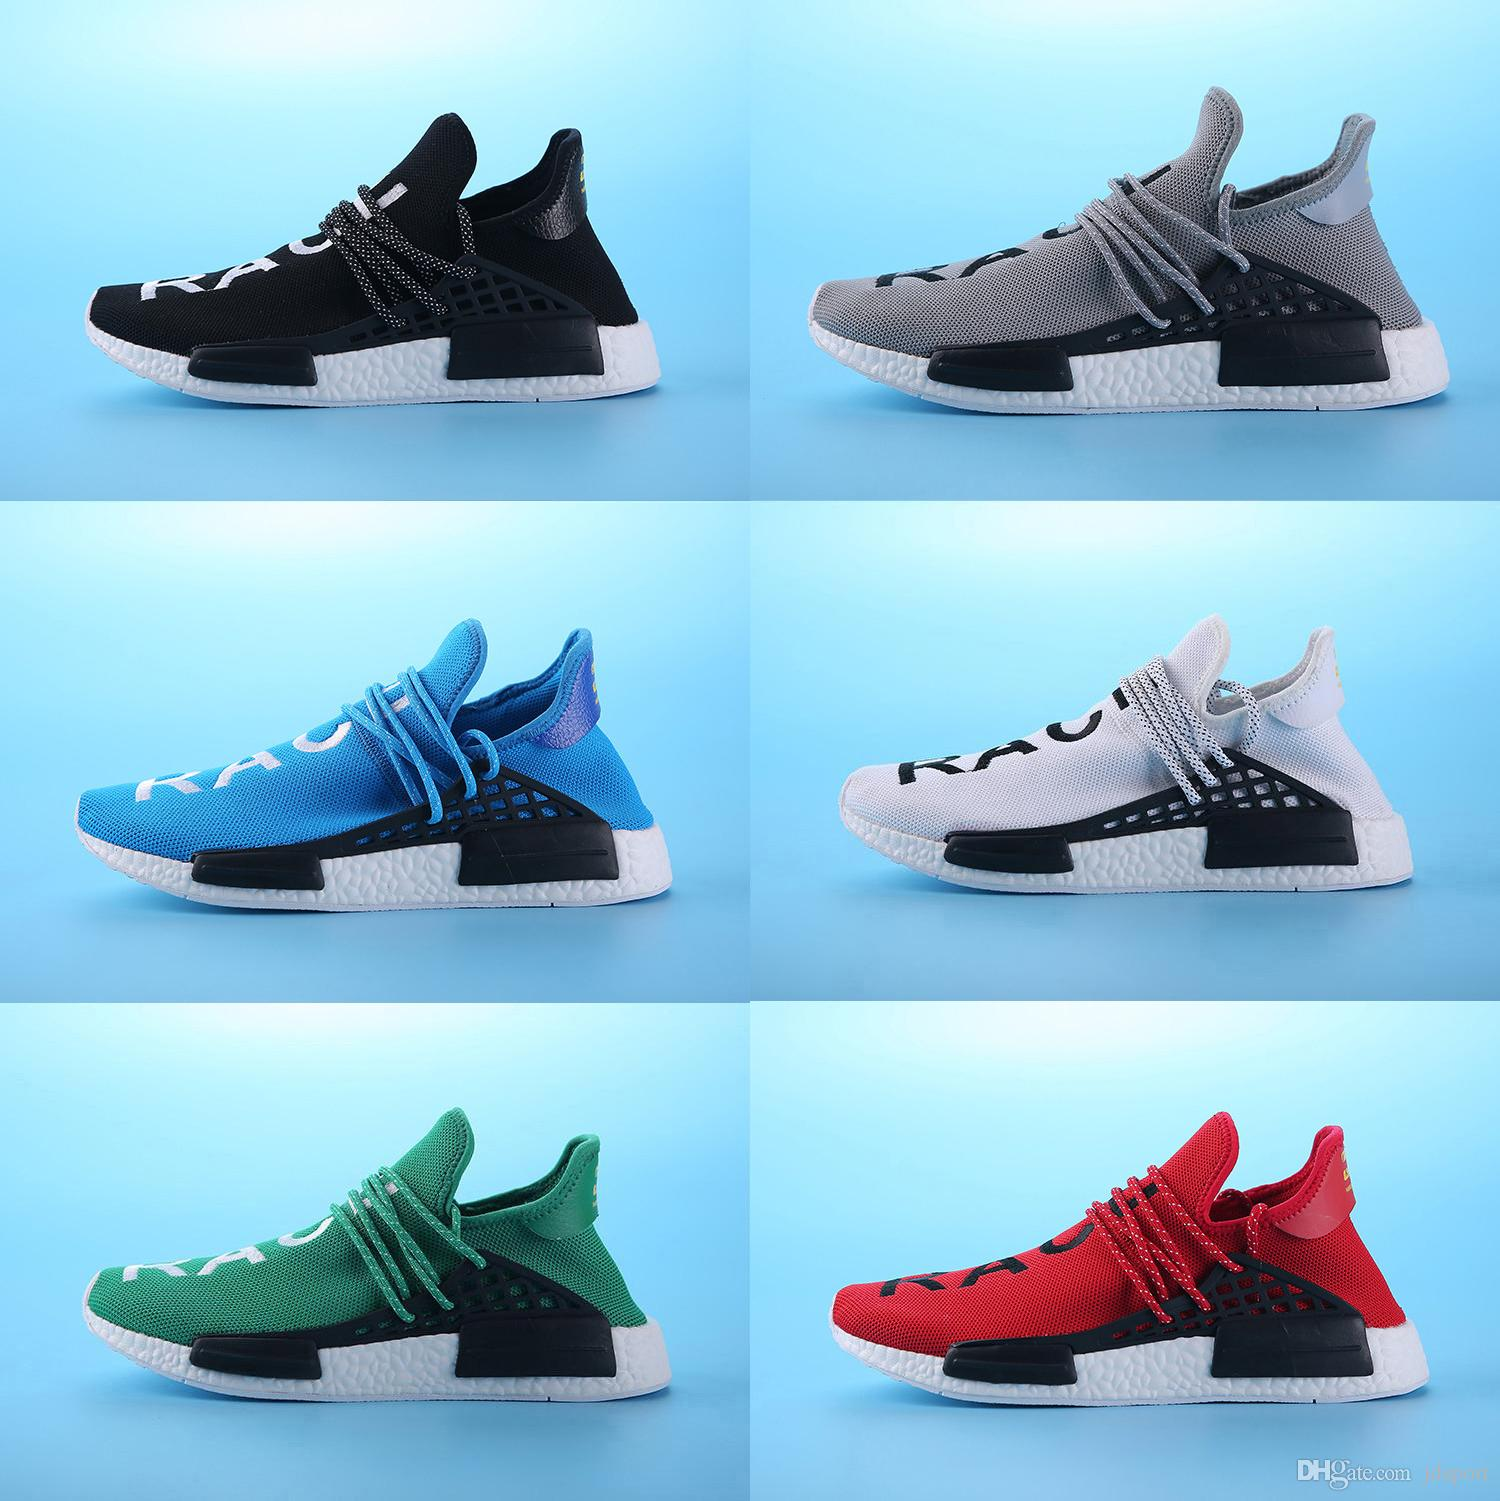 Newest NMD Runner Primeknit Men'S Running Shoes Fashion Running Sneakers for Men and Women Human Race Free Shipping Black discount fast delivery outlet 2014 unisex sale sast DKnZtA7ml